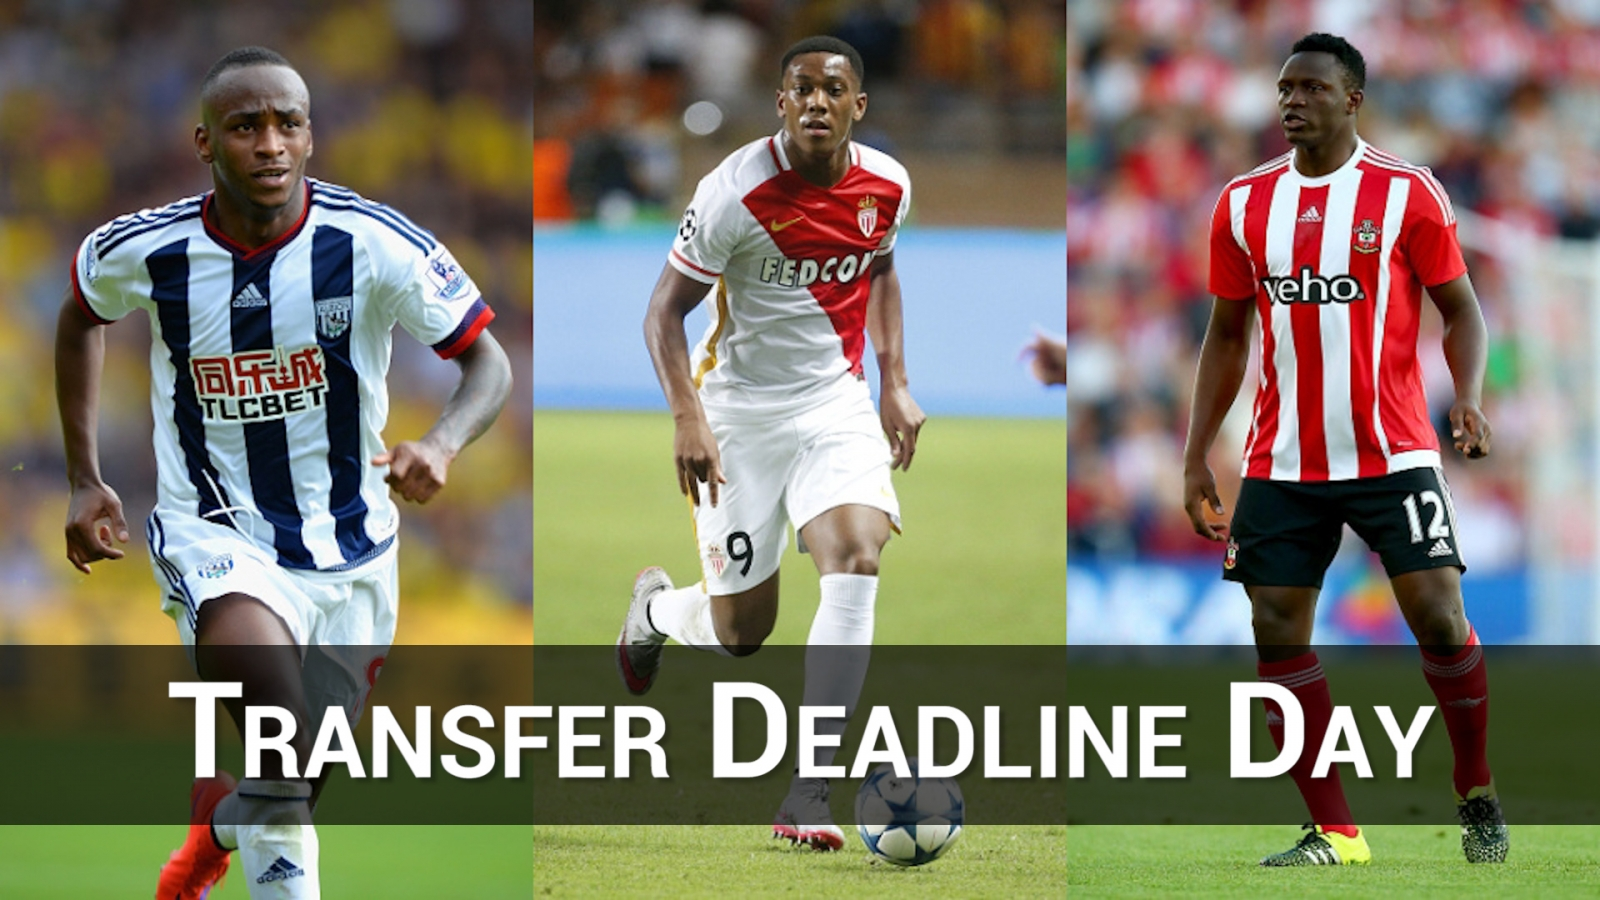 transfer deadline day - photo #20